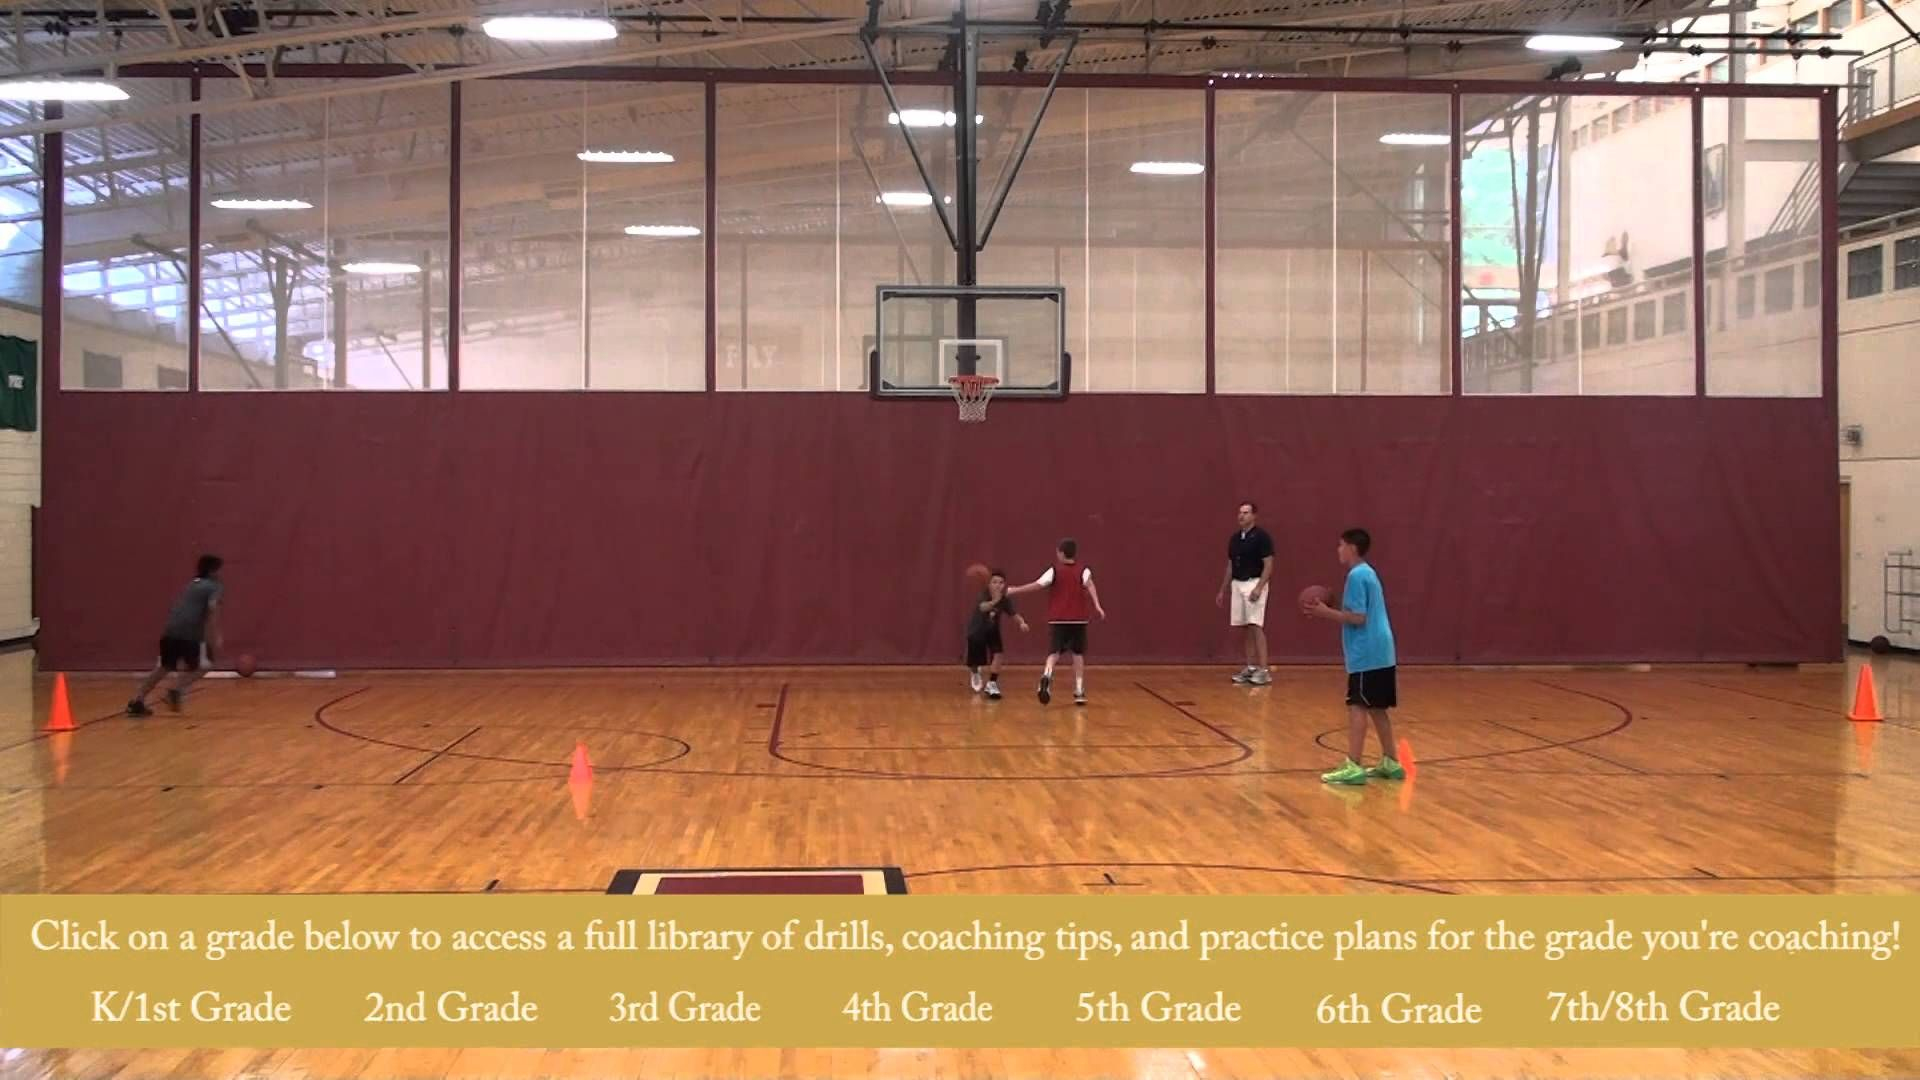 Great Youth Basketball Shooting Drill And Coaching Material For 2nd 3rd 4th 5th Grade Basketball Shooting Drills Youth Basketball Basketball